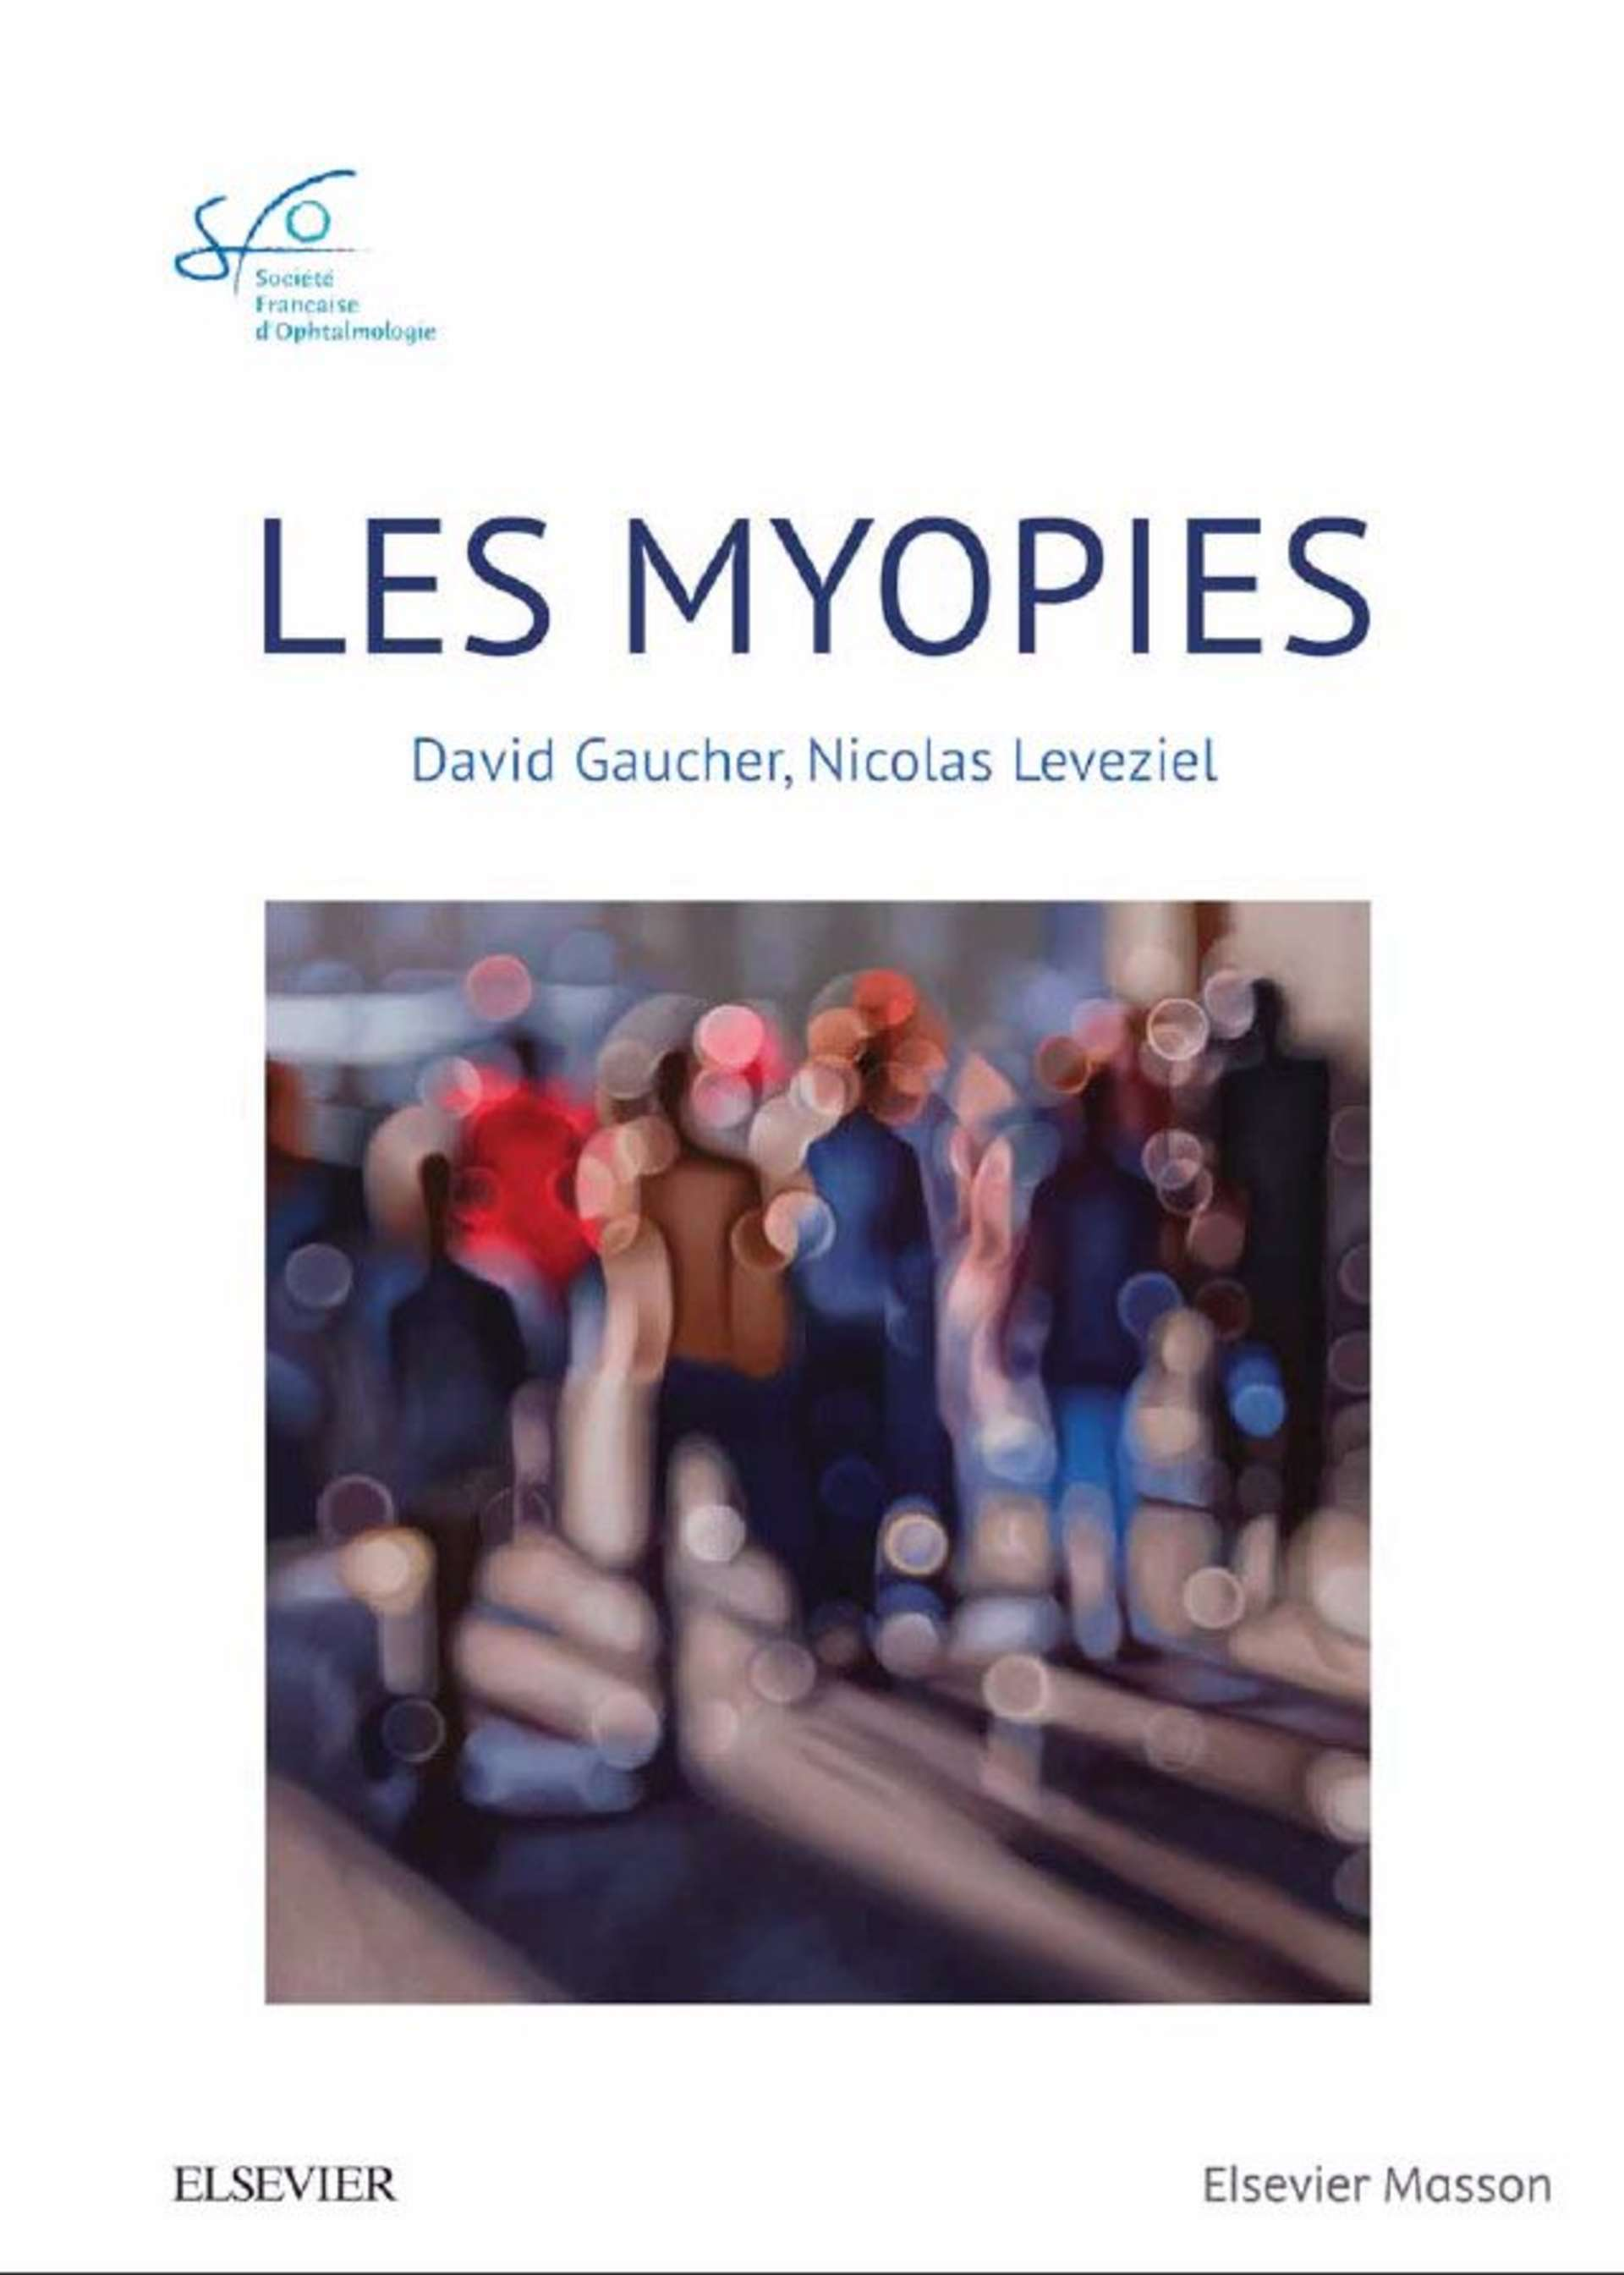 Les myopies. Rapport SFO 2019, David Gaucher, Nicolas Leveziel Elsevier-Masson, février 2019, 224 pages, 199 e. ISBN : 9782294761331